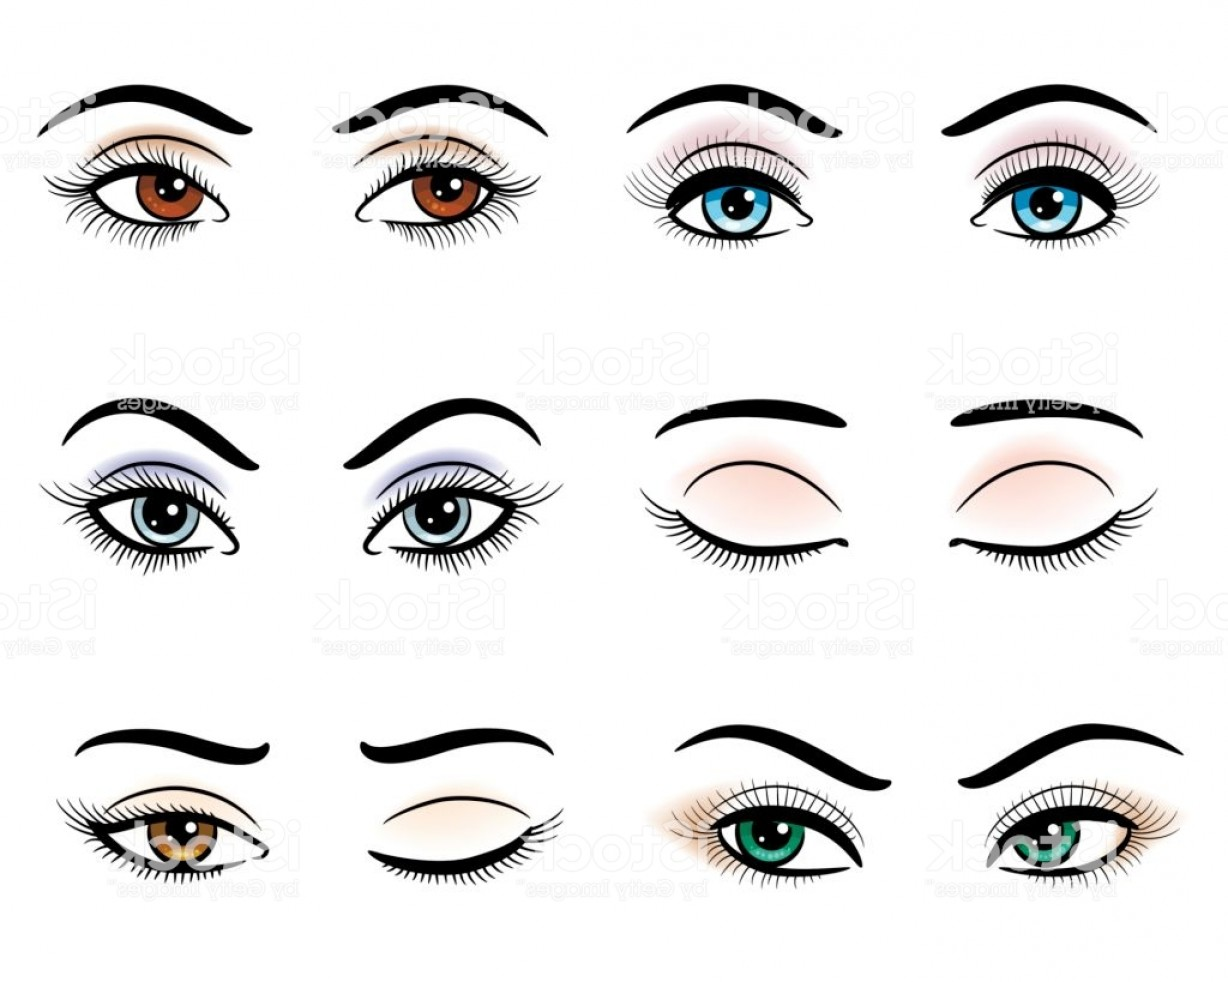 Woman Eye Vector Graphics: Open And Closed Woman Eyes Gm